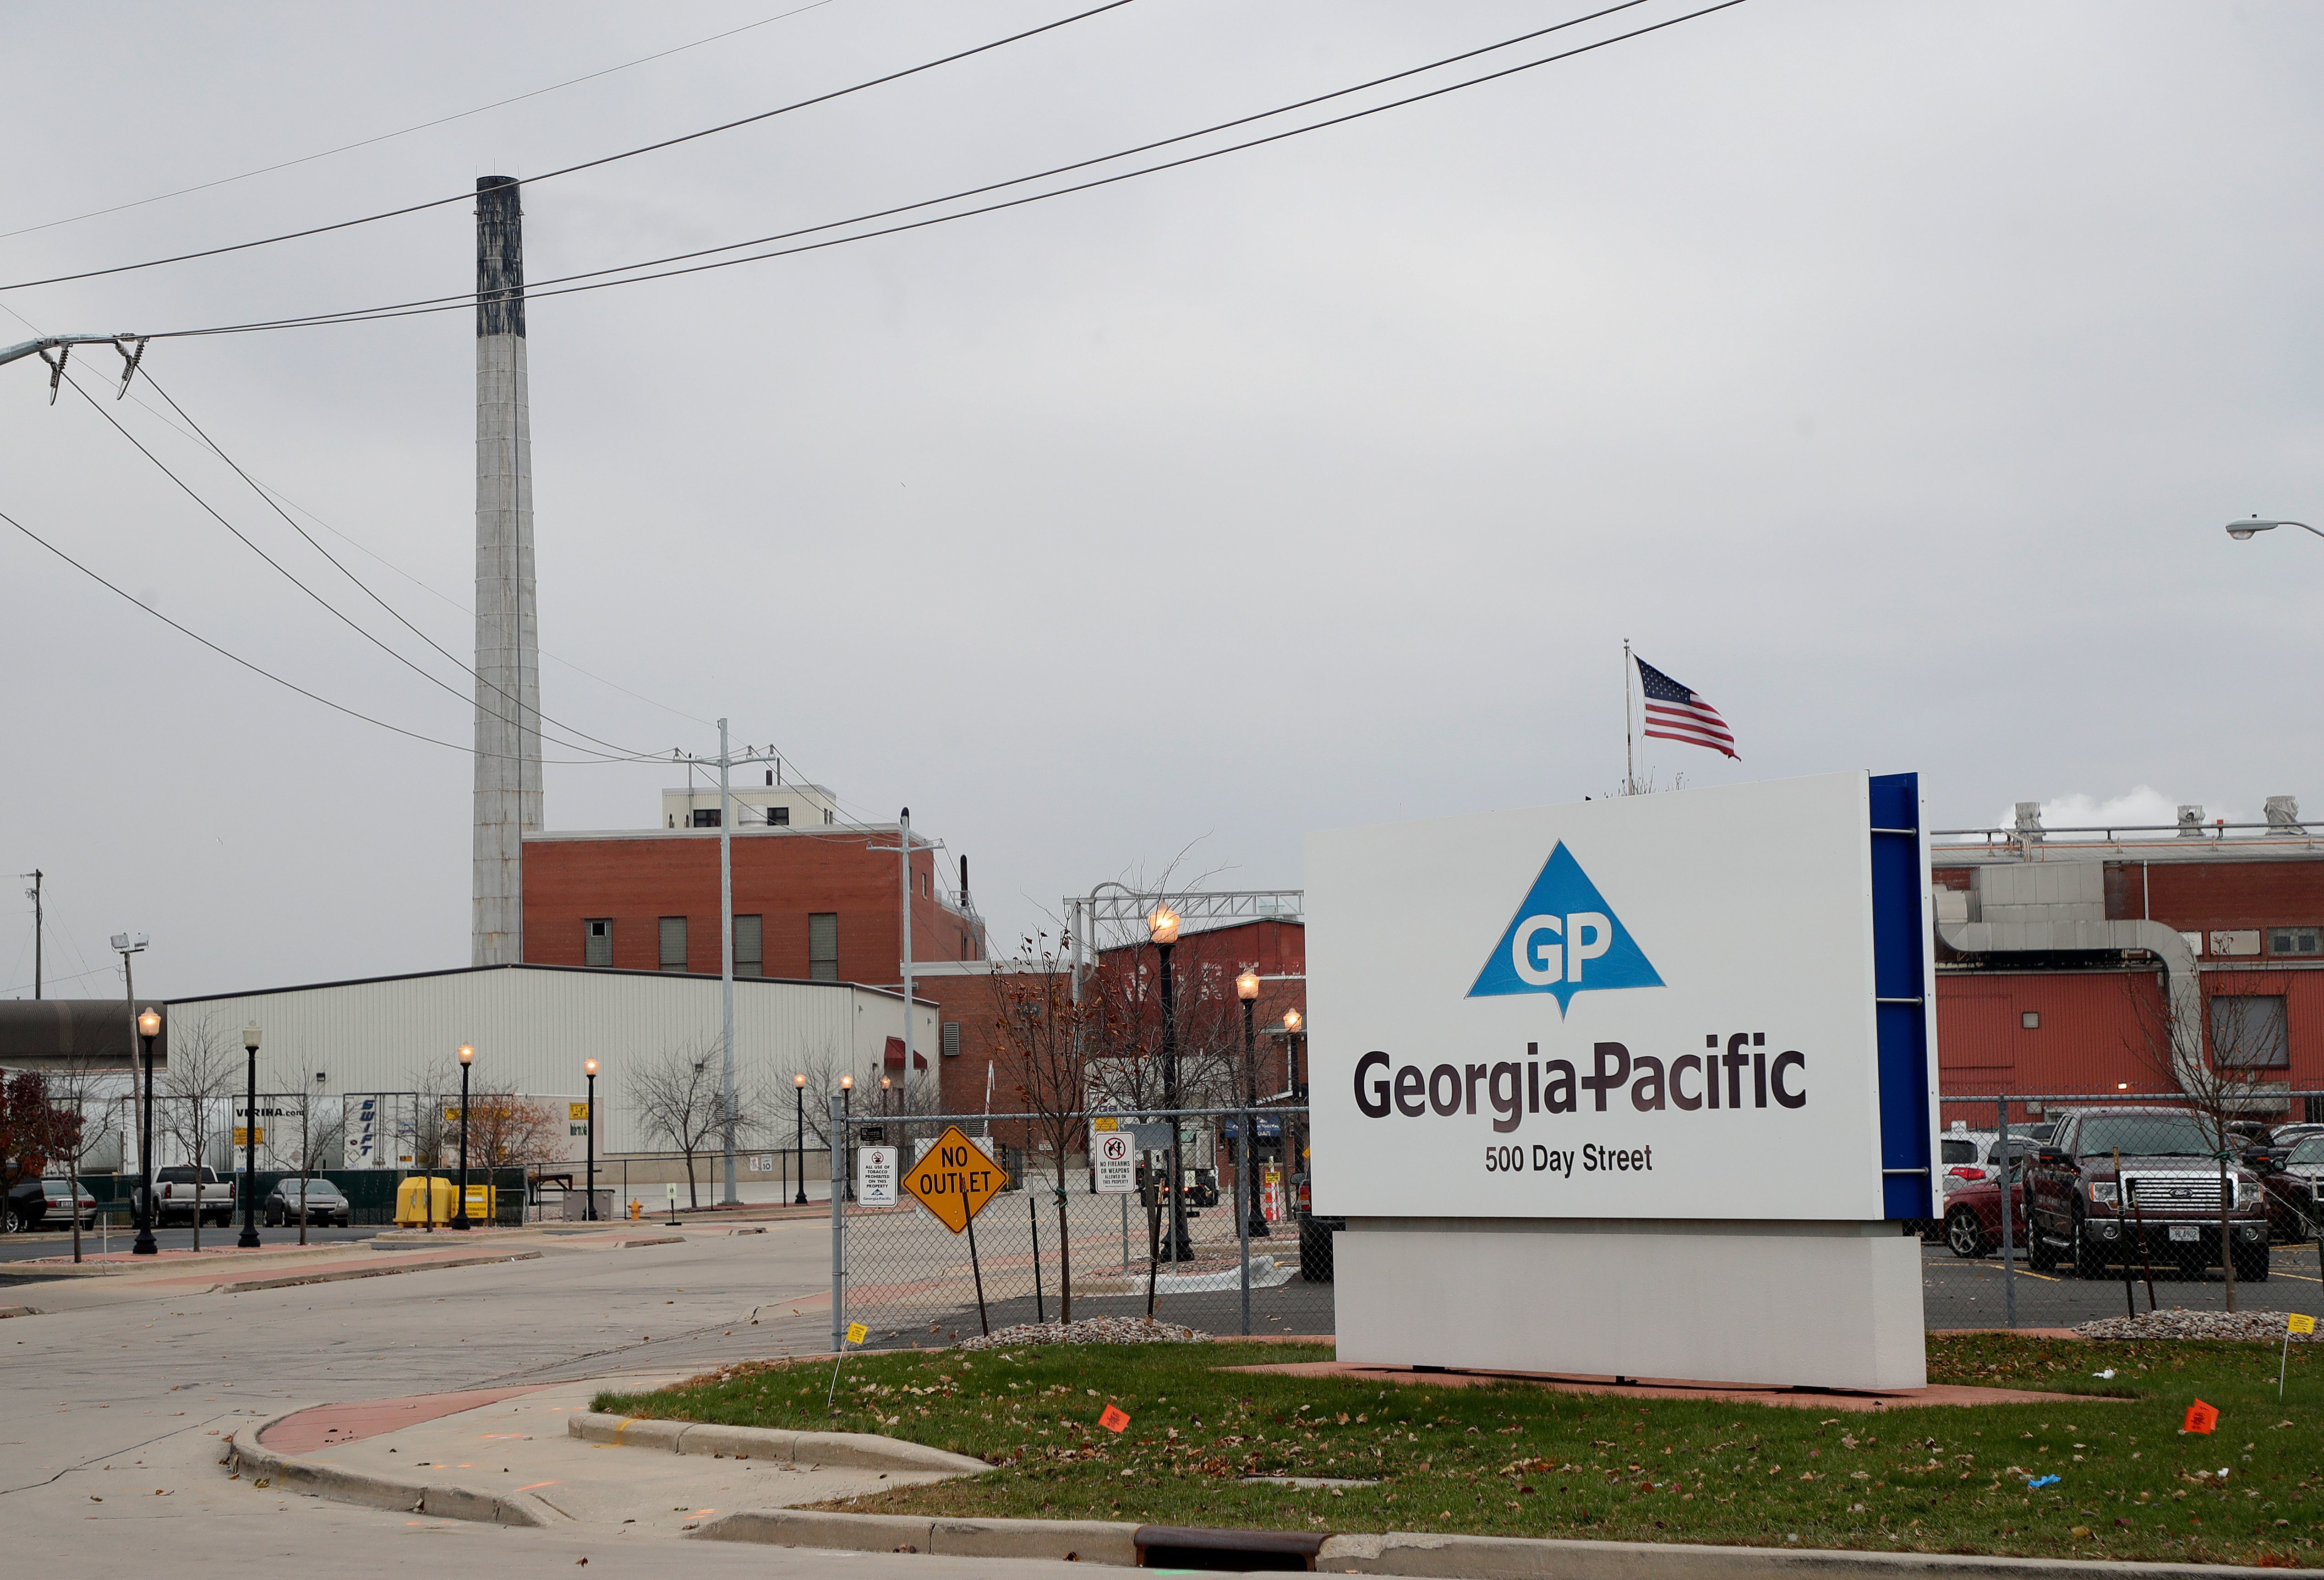 Georgia-Pacific's mill at 500 Day St. in Green Bay, Wis.